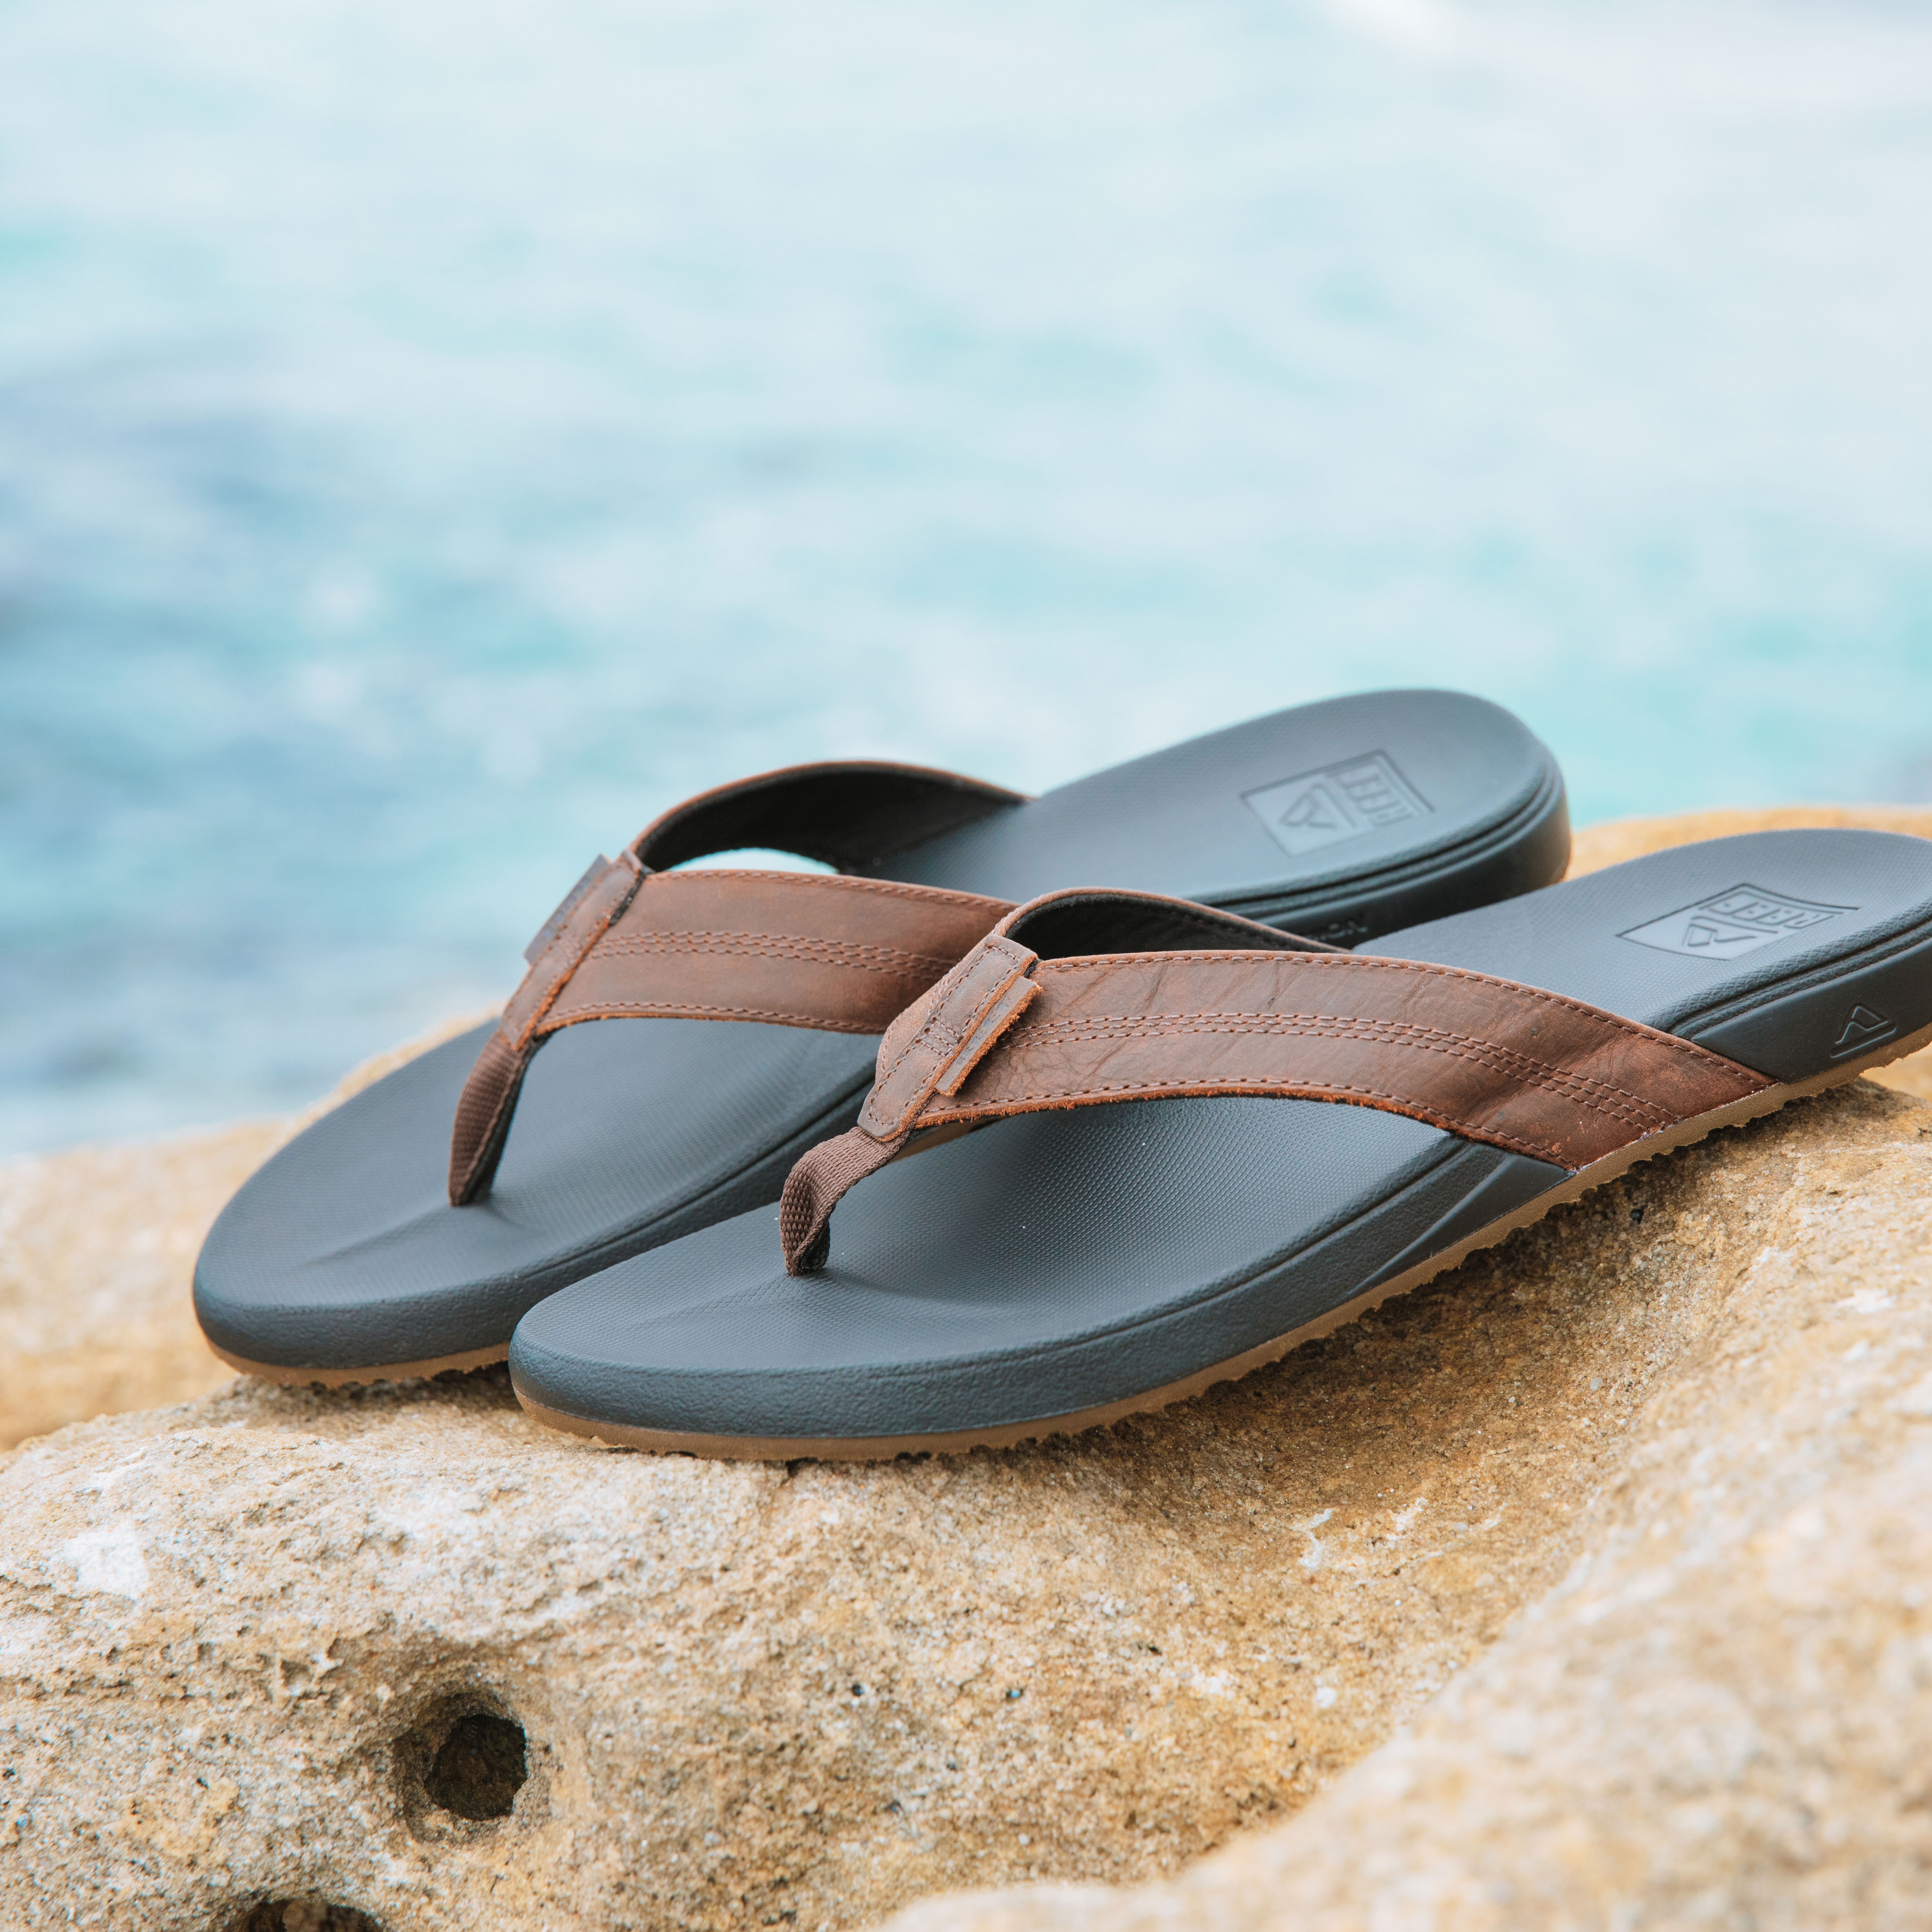 Sandals from Reef